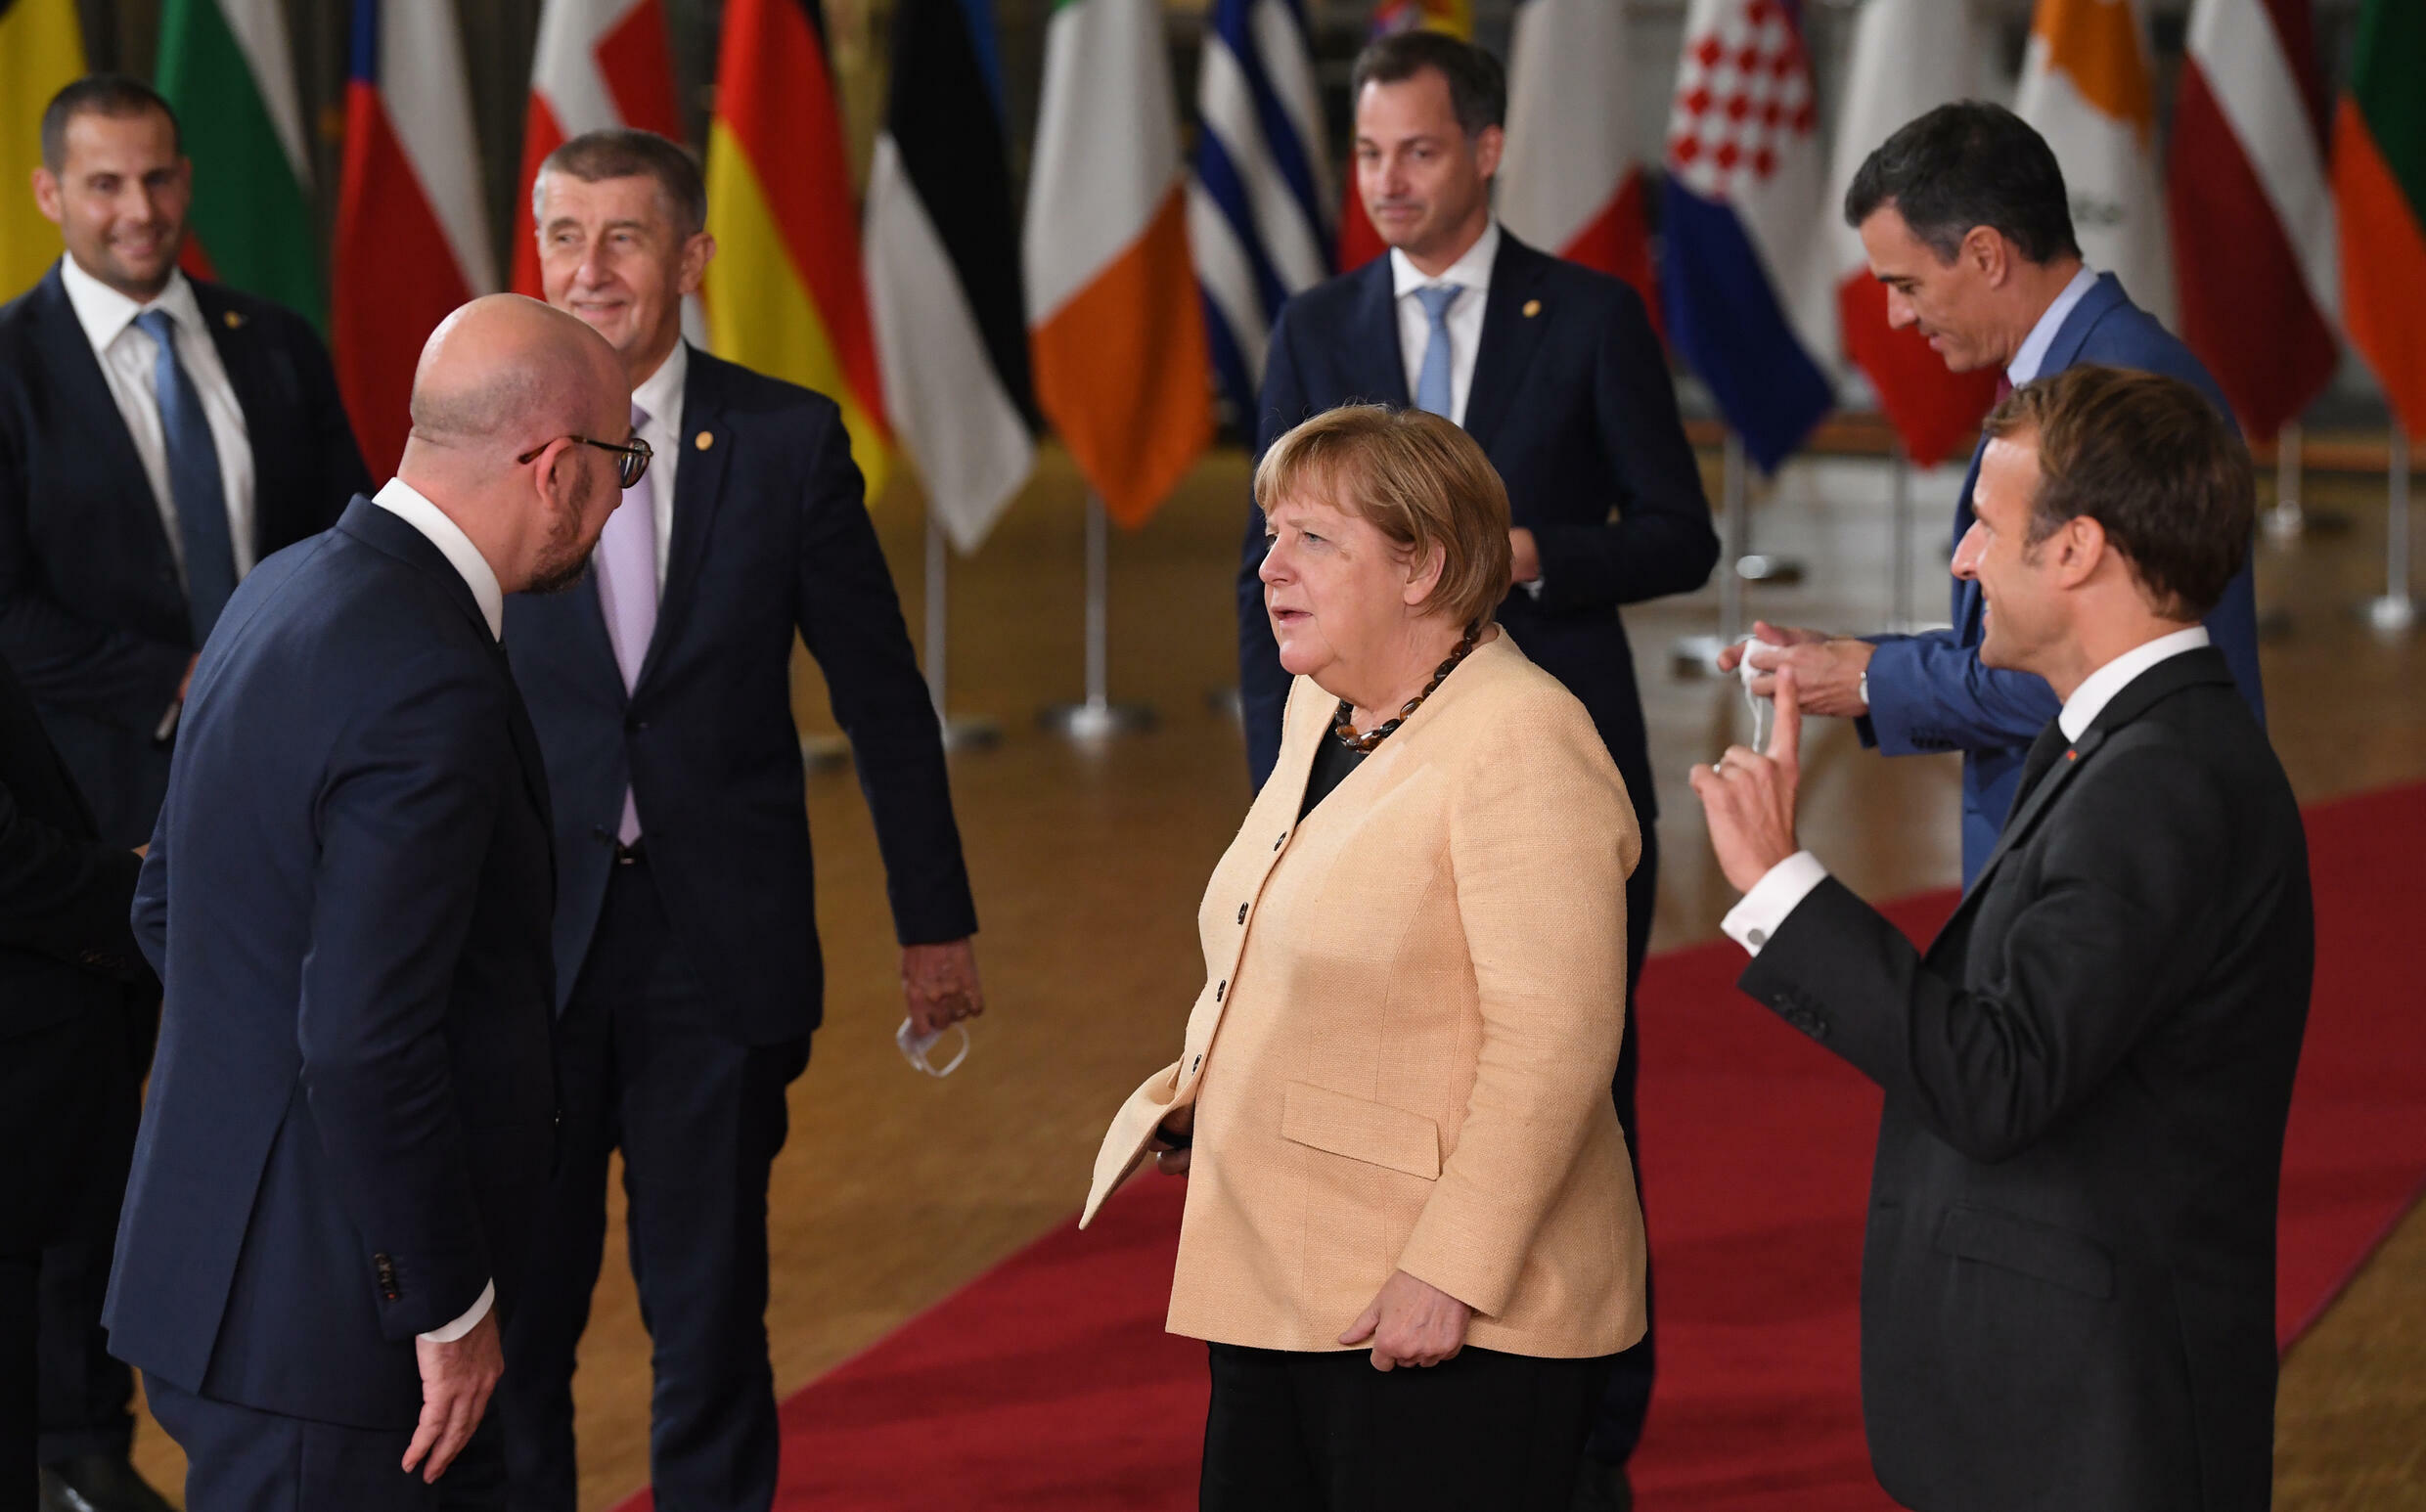 Merkel in her light jacket stood out from the dark suits of her counterparts in a summit group photo